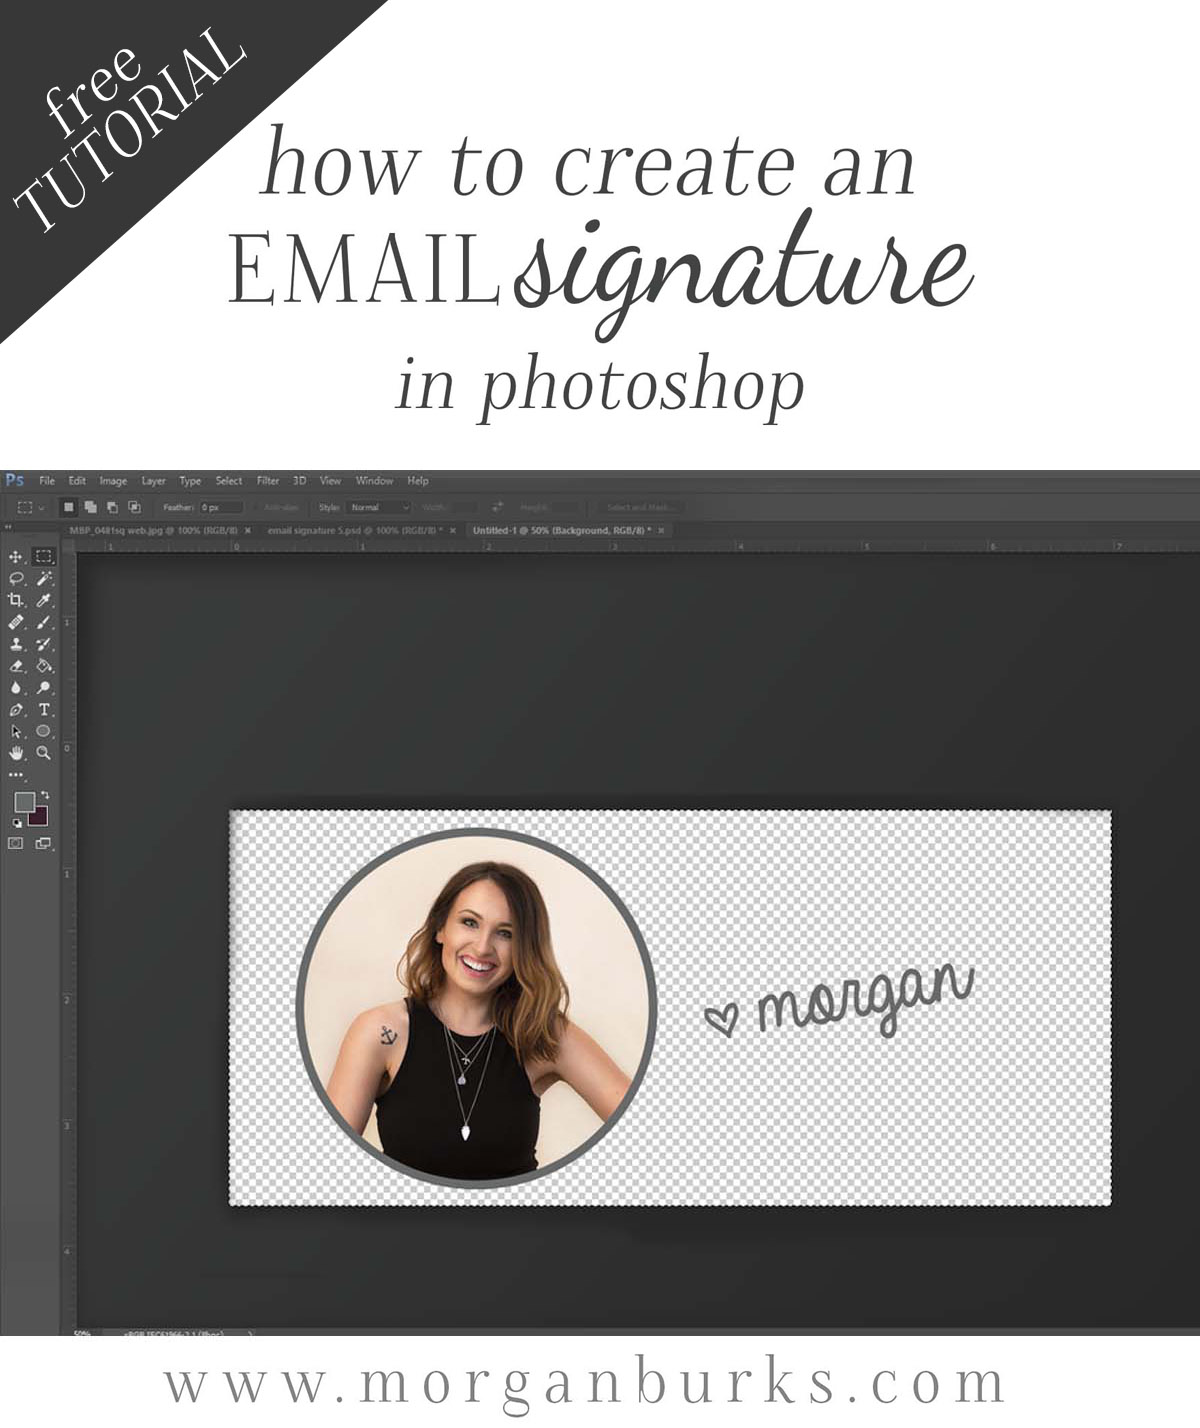 In this video tutorial, I'll show you how to create an email signature image in Photoshop. Then you can start displaying your smiling face in every email you send!